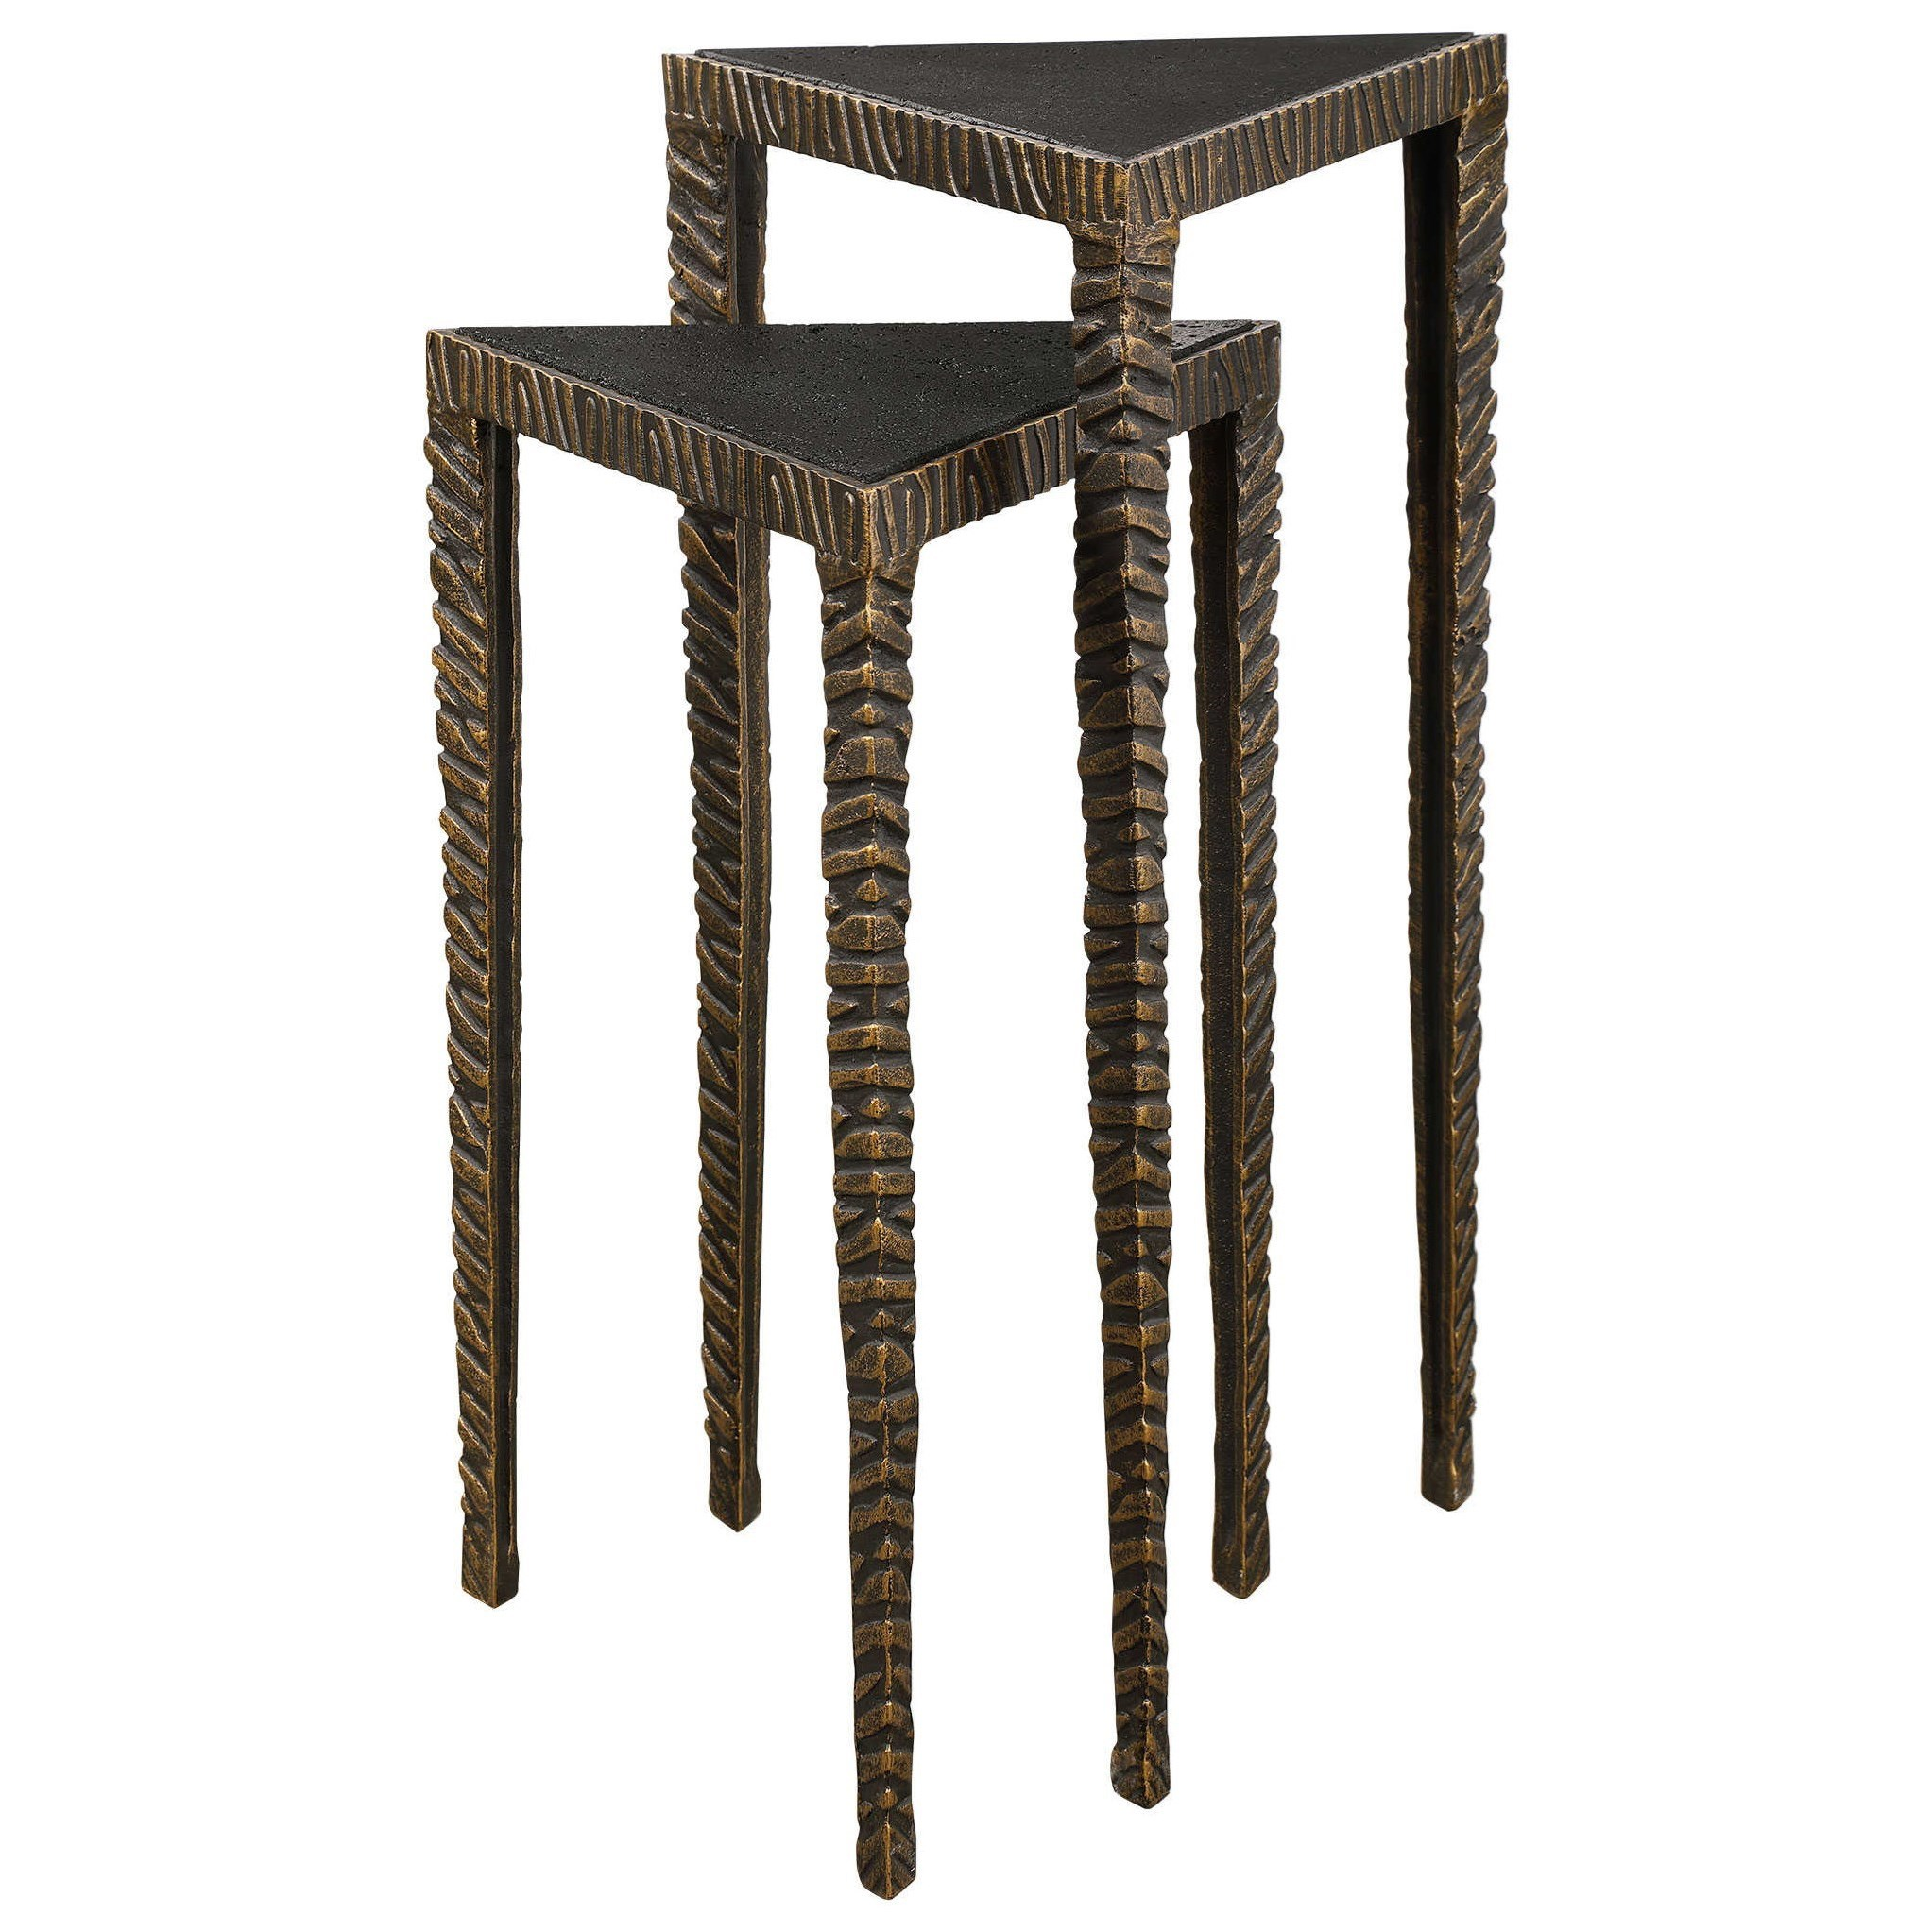 Accent Furniture - Occasional Tables Triangular Accent Tables, S/2 by Uttermost at Factory Direct Furniture